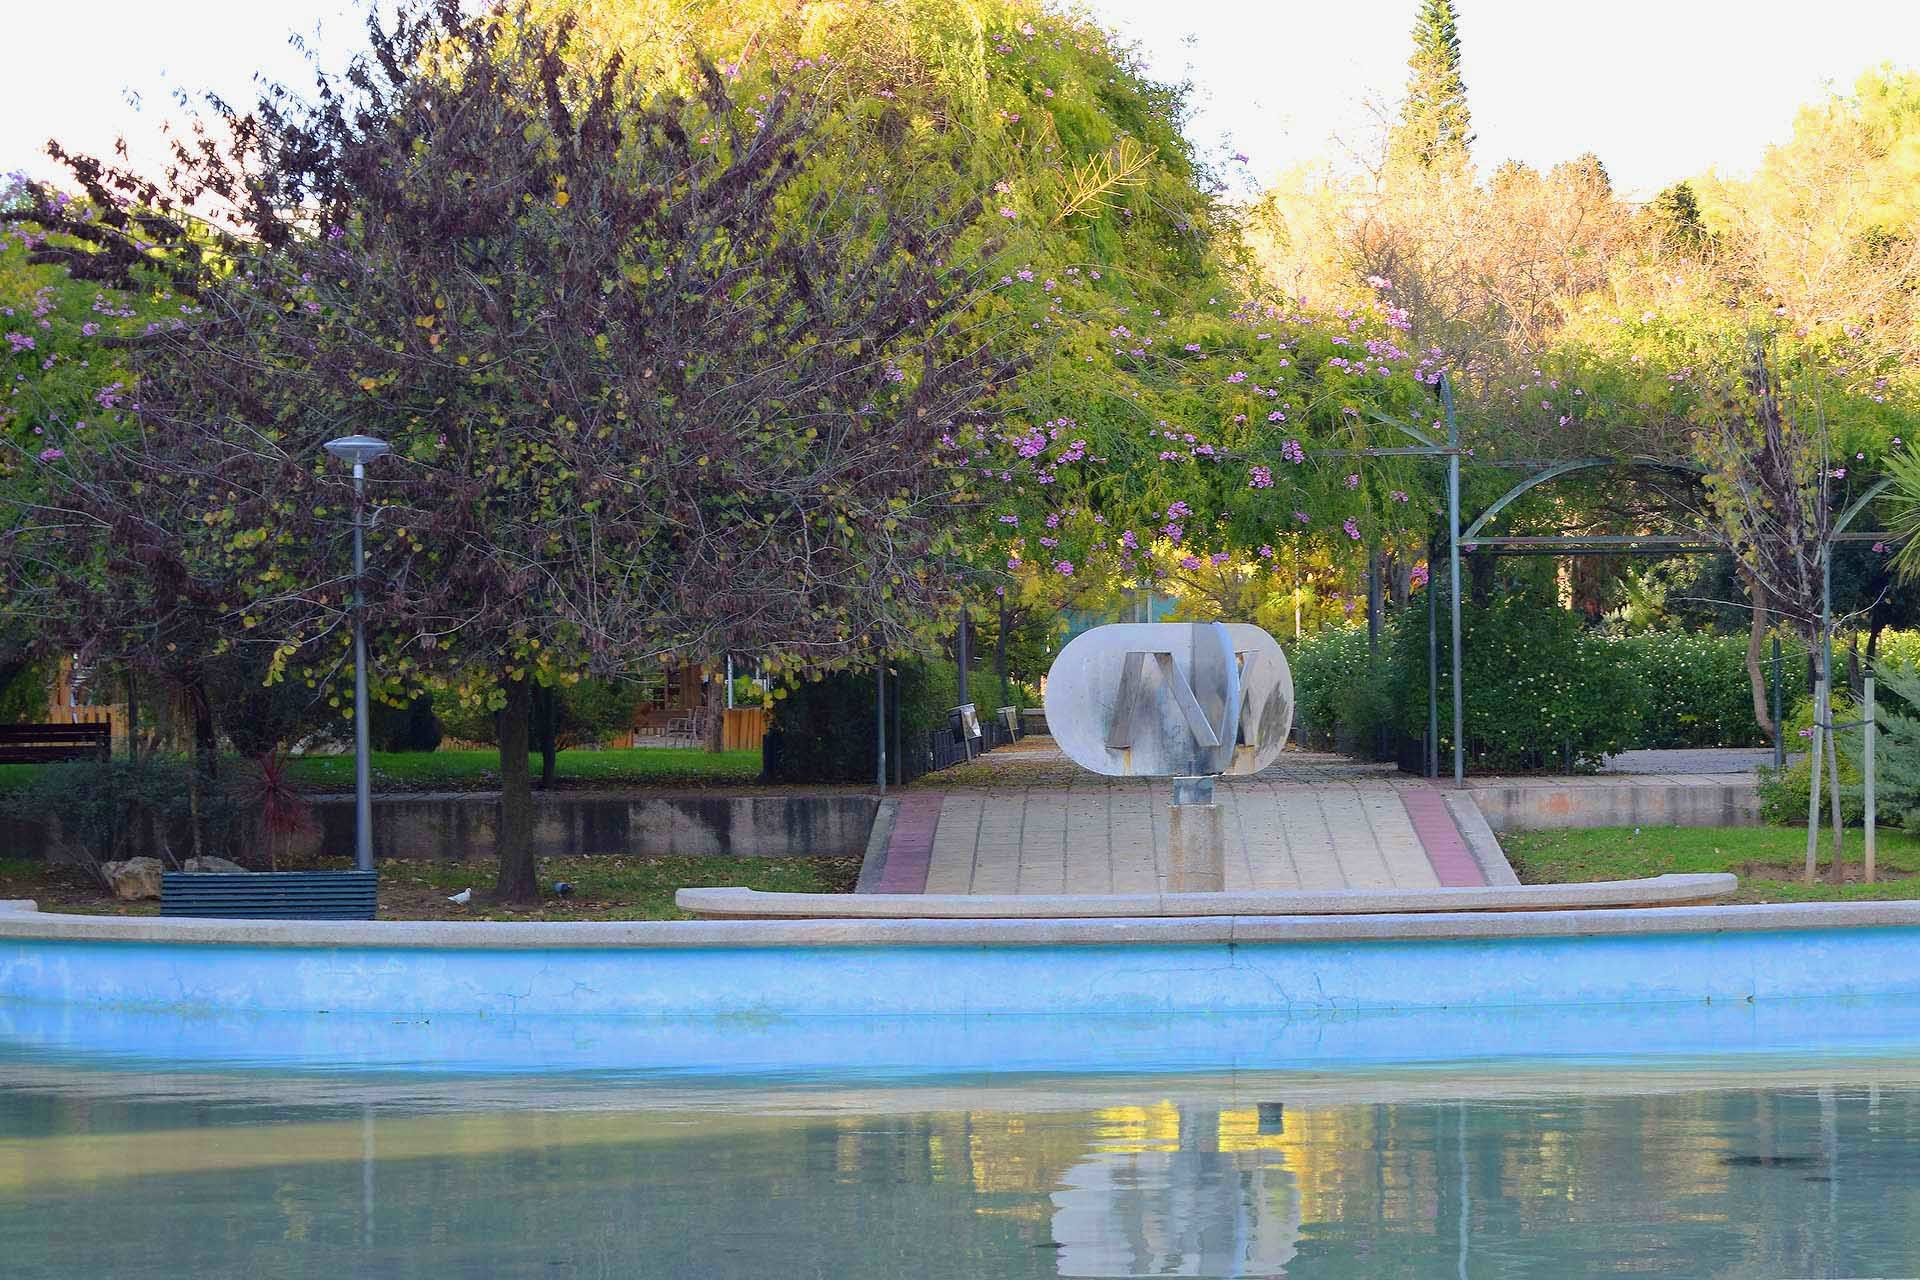 Parc De Ses Fonts Sculpture